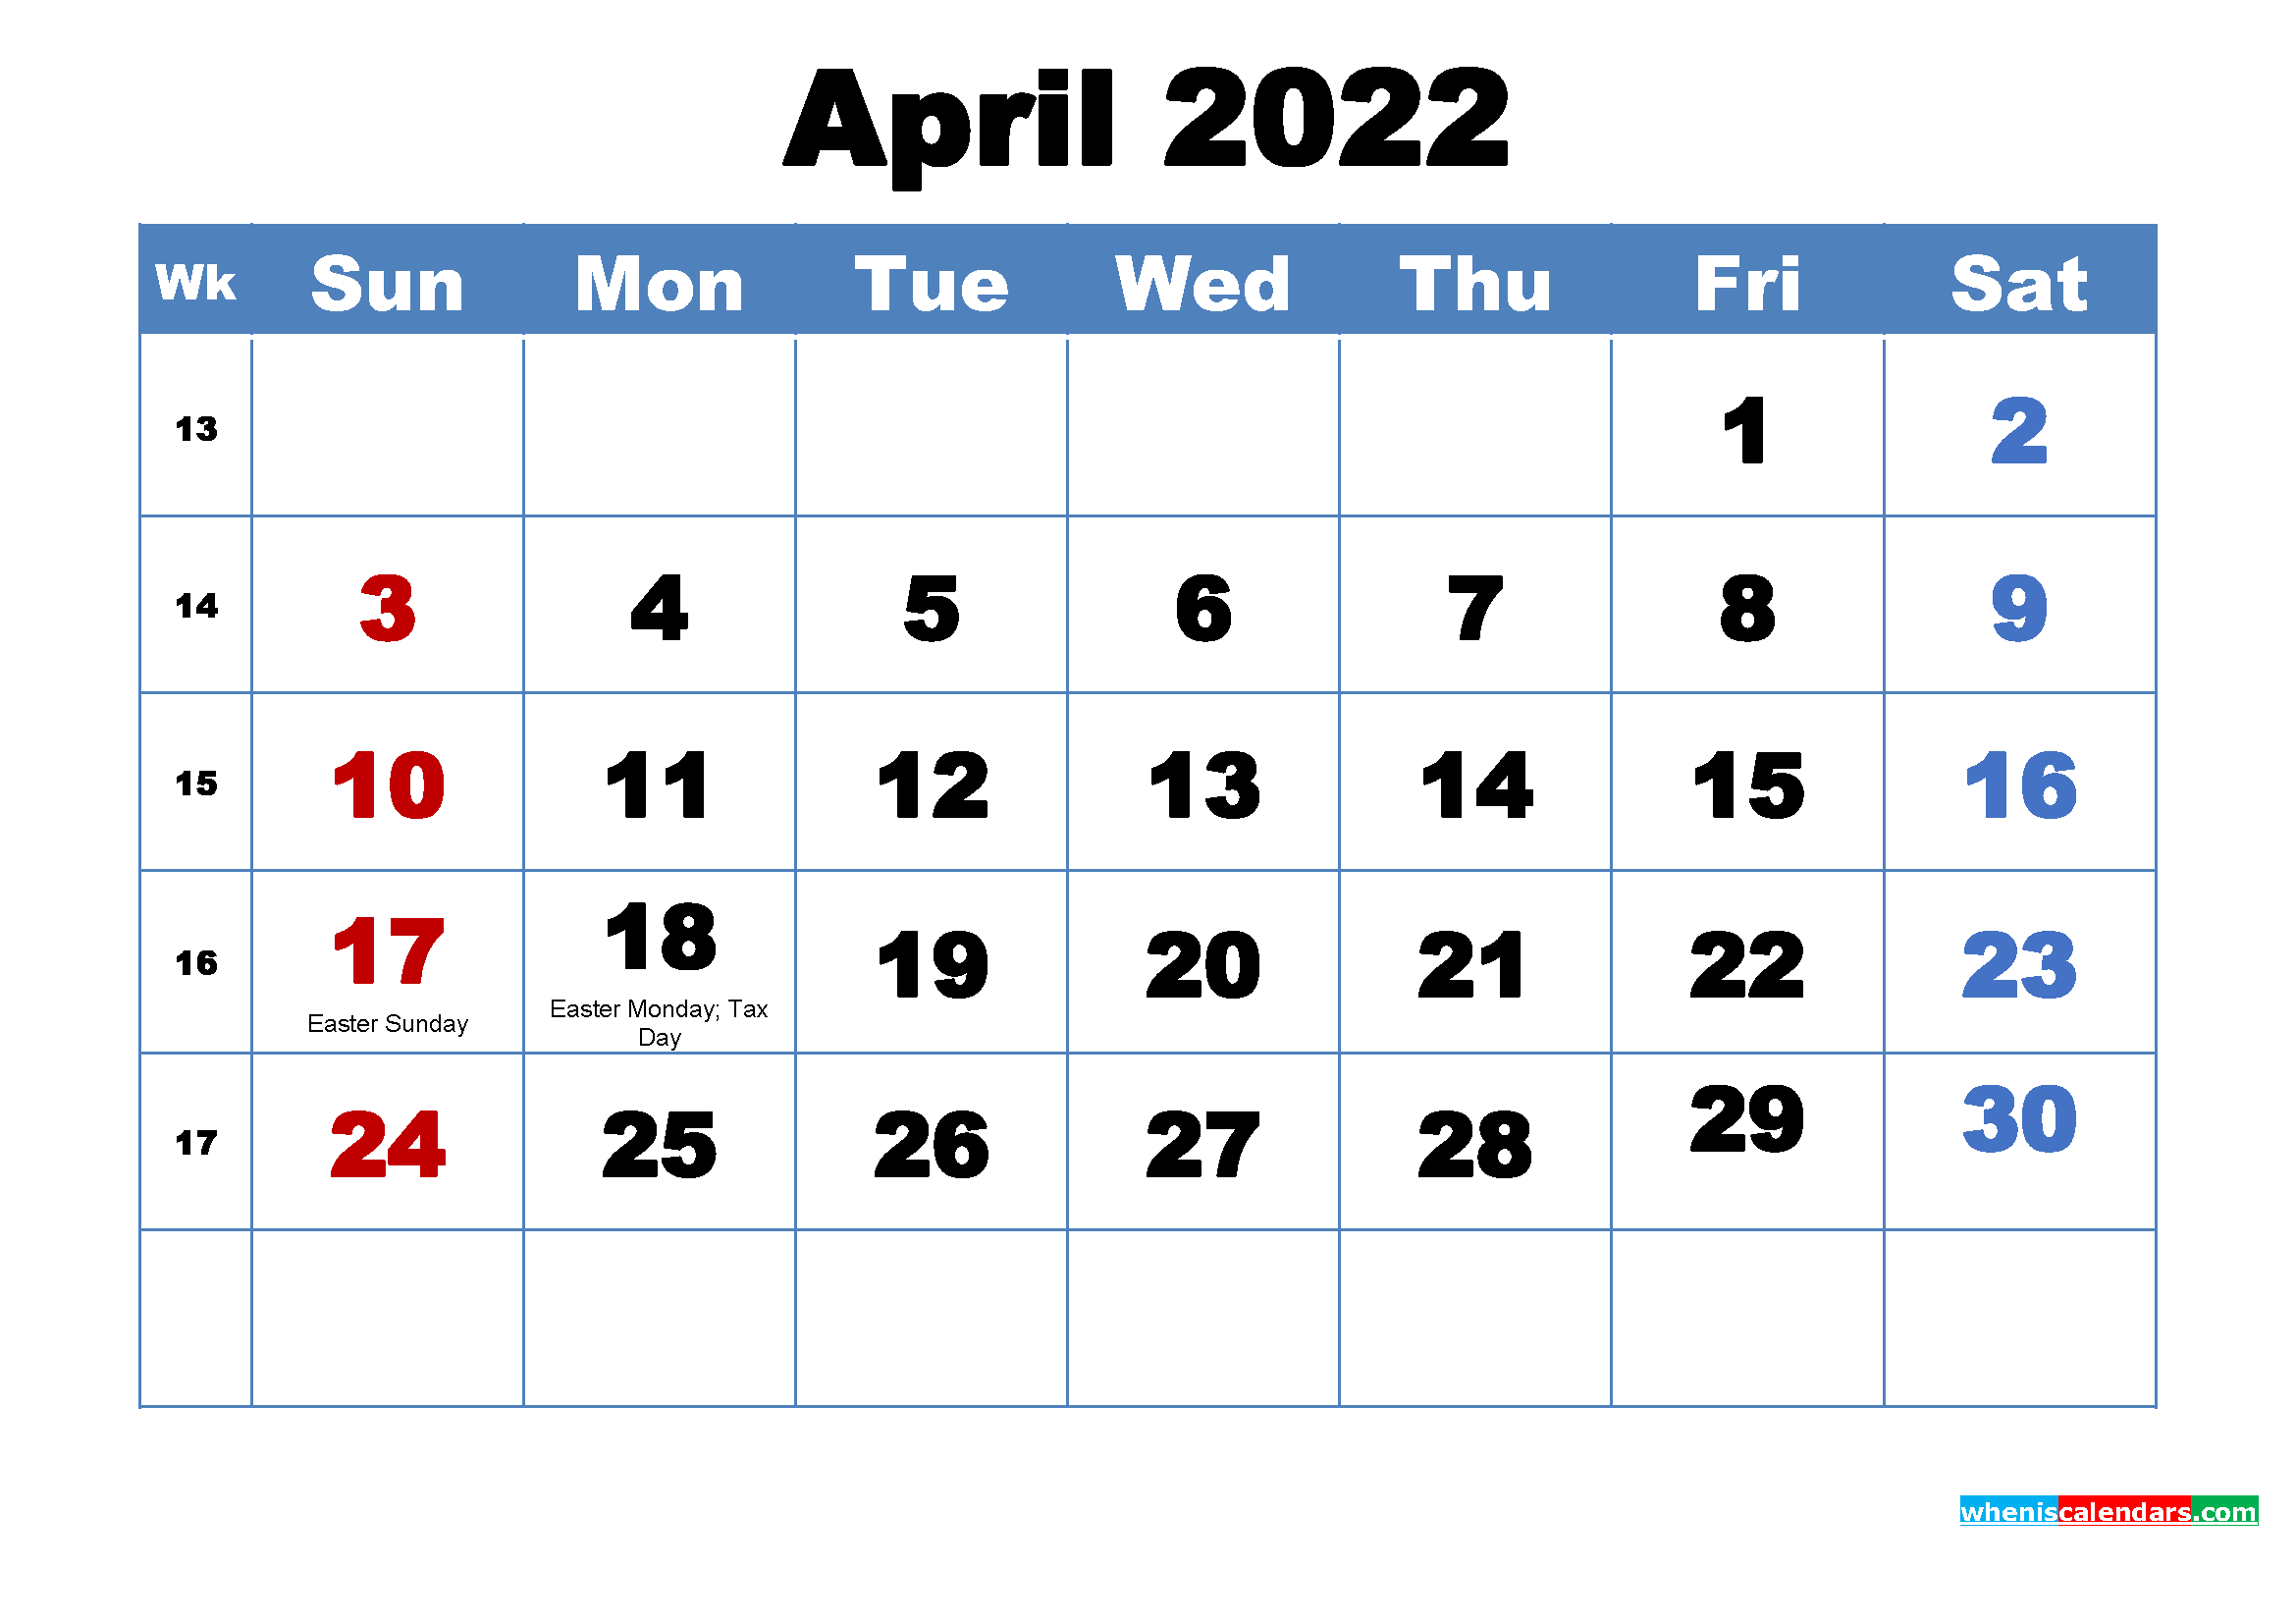 Printable 2022 Calendar by Month April